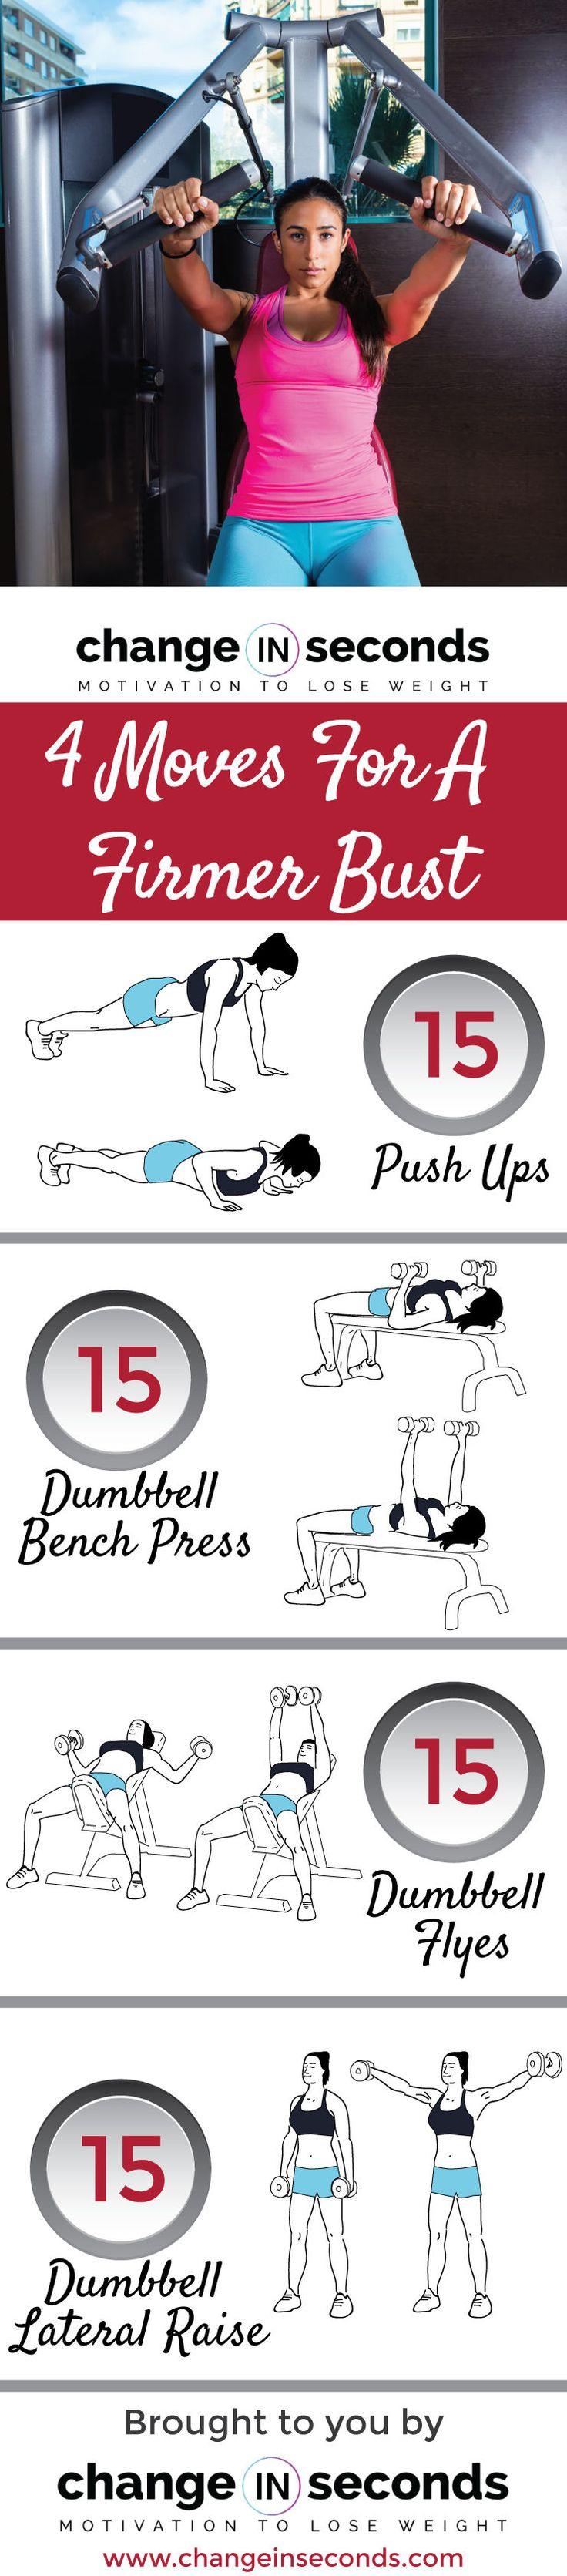 4 Moves For A Firmer Bust A Chest Workout For Women Download FREE PDF